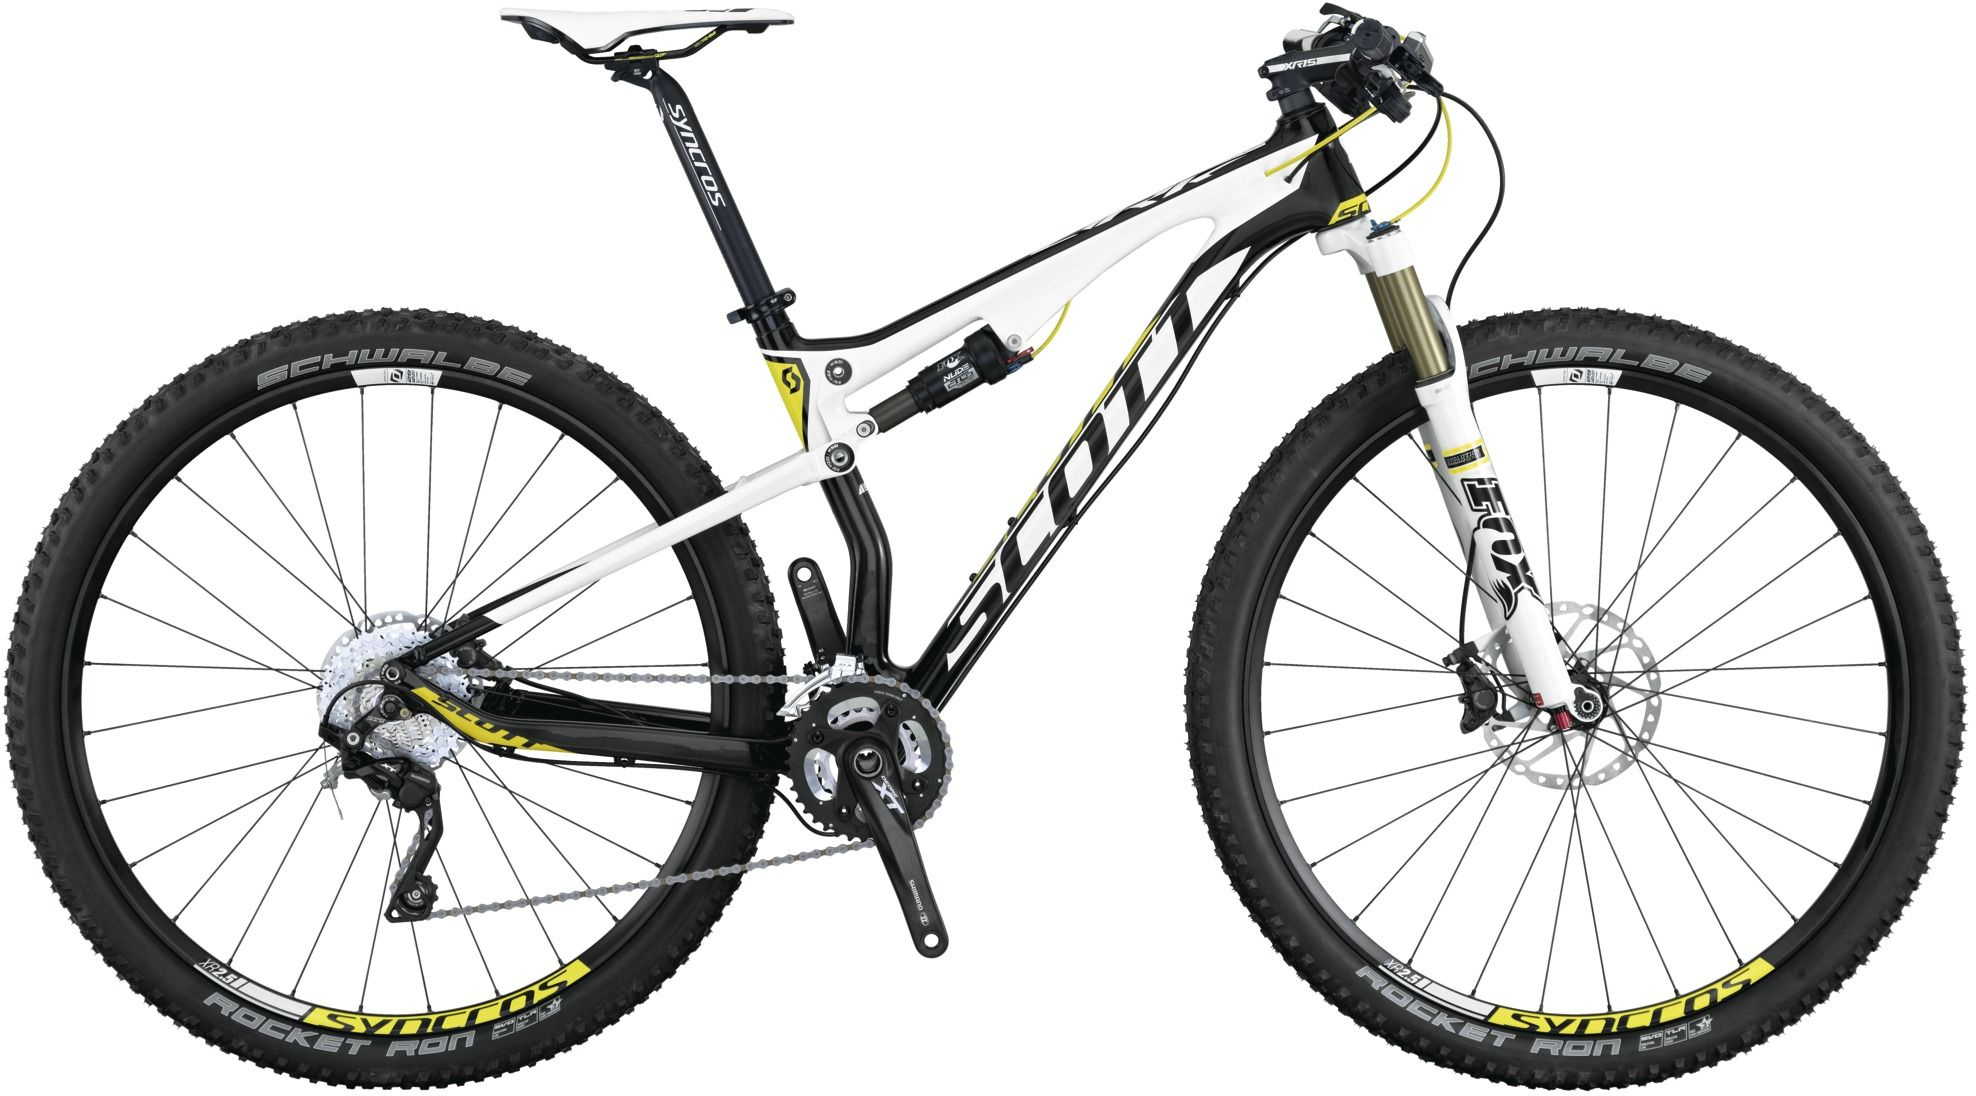 2fbb652690c Scott Spark 920 2015 review - The Bike List